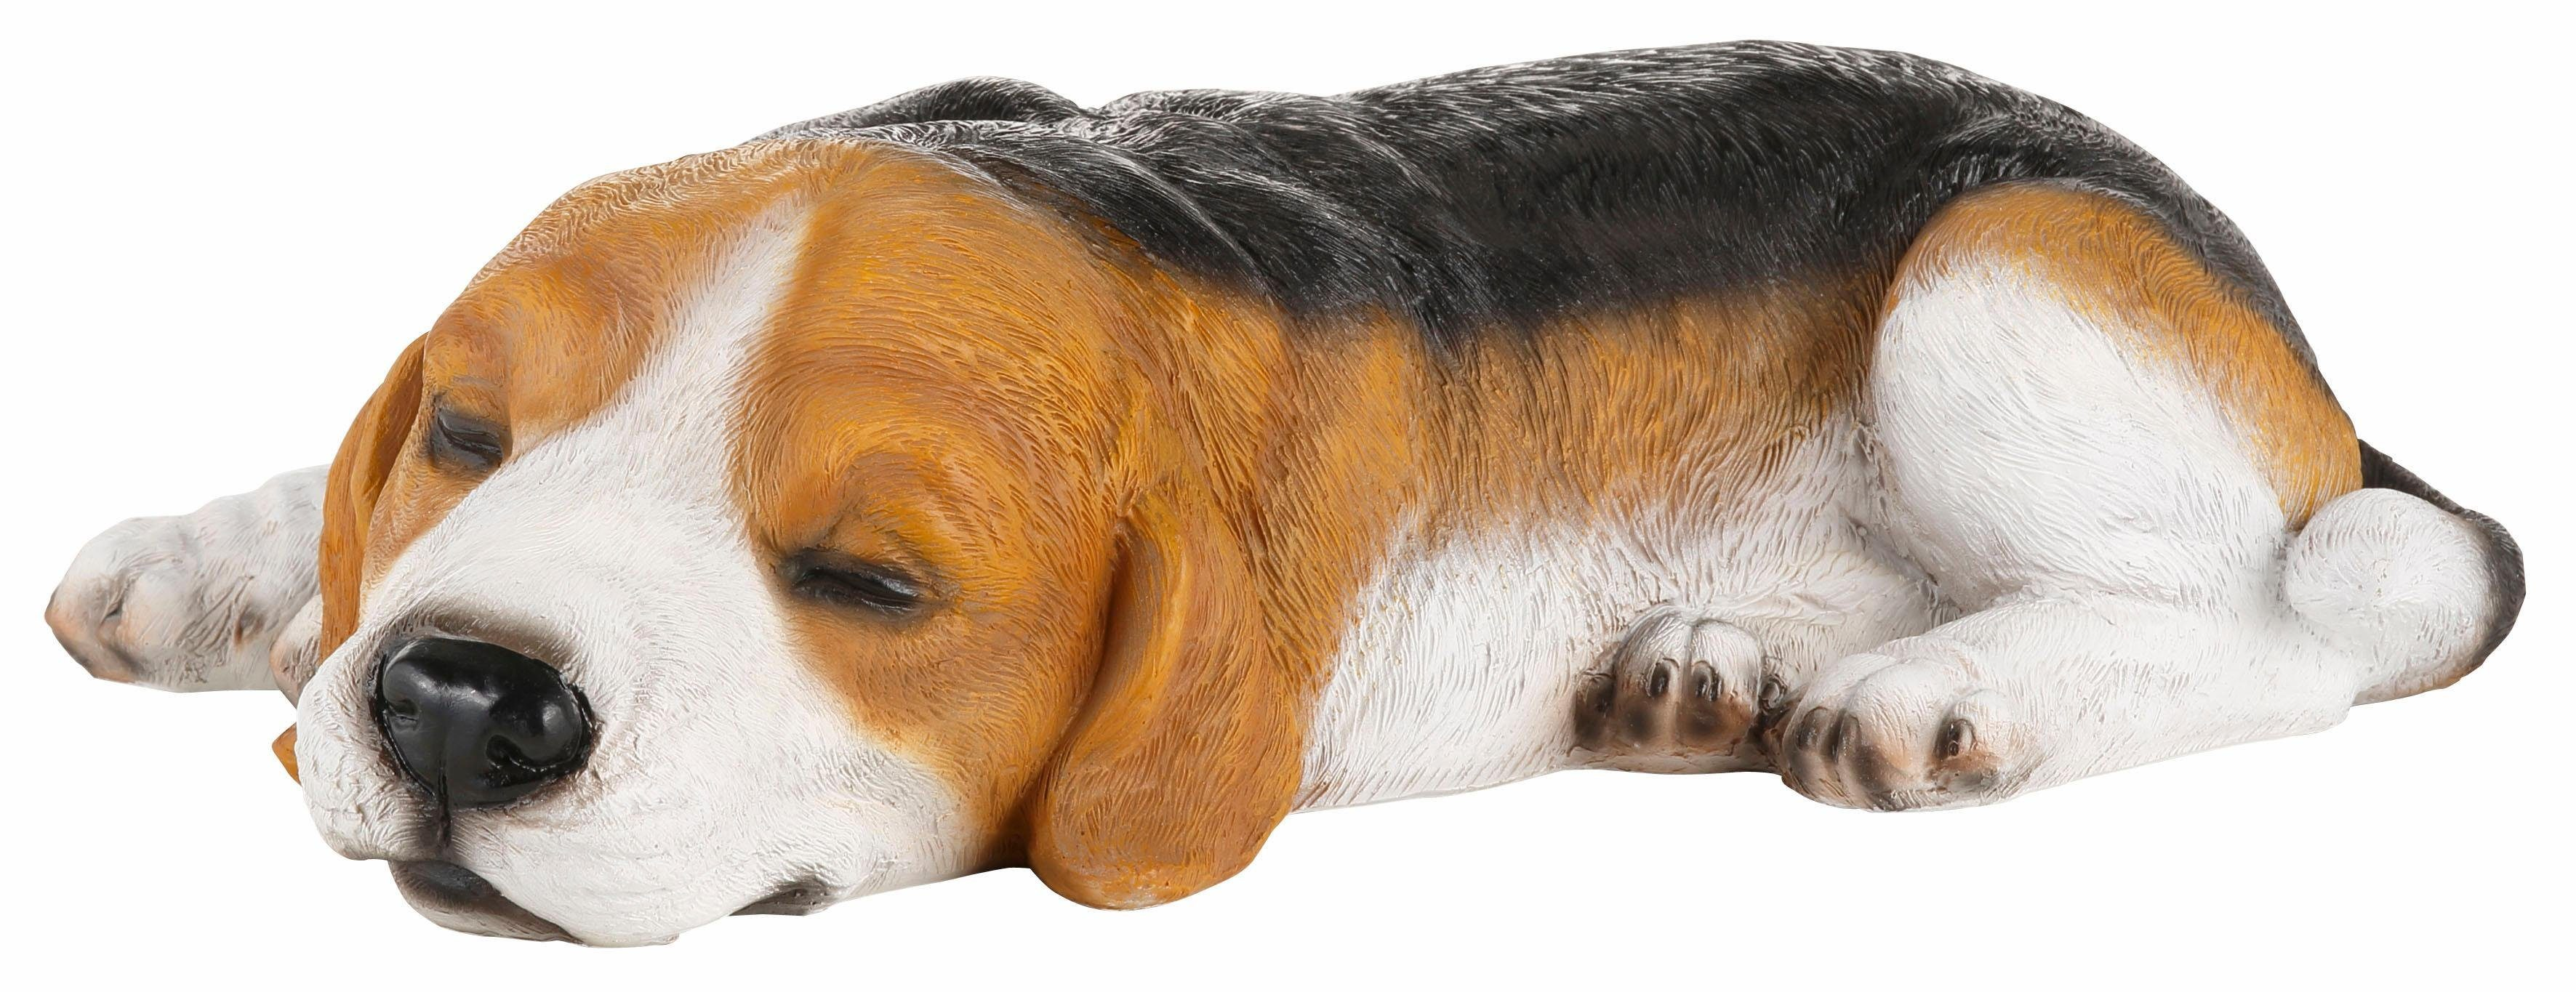 Home affaire Dekofigur »Hund Beagle«